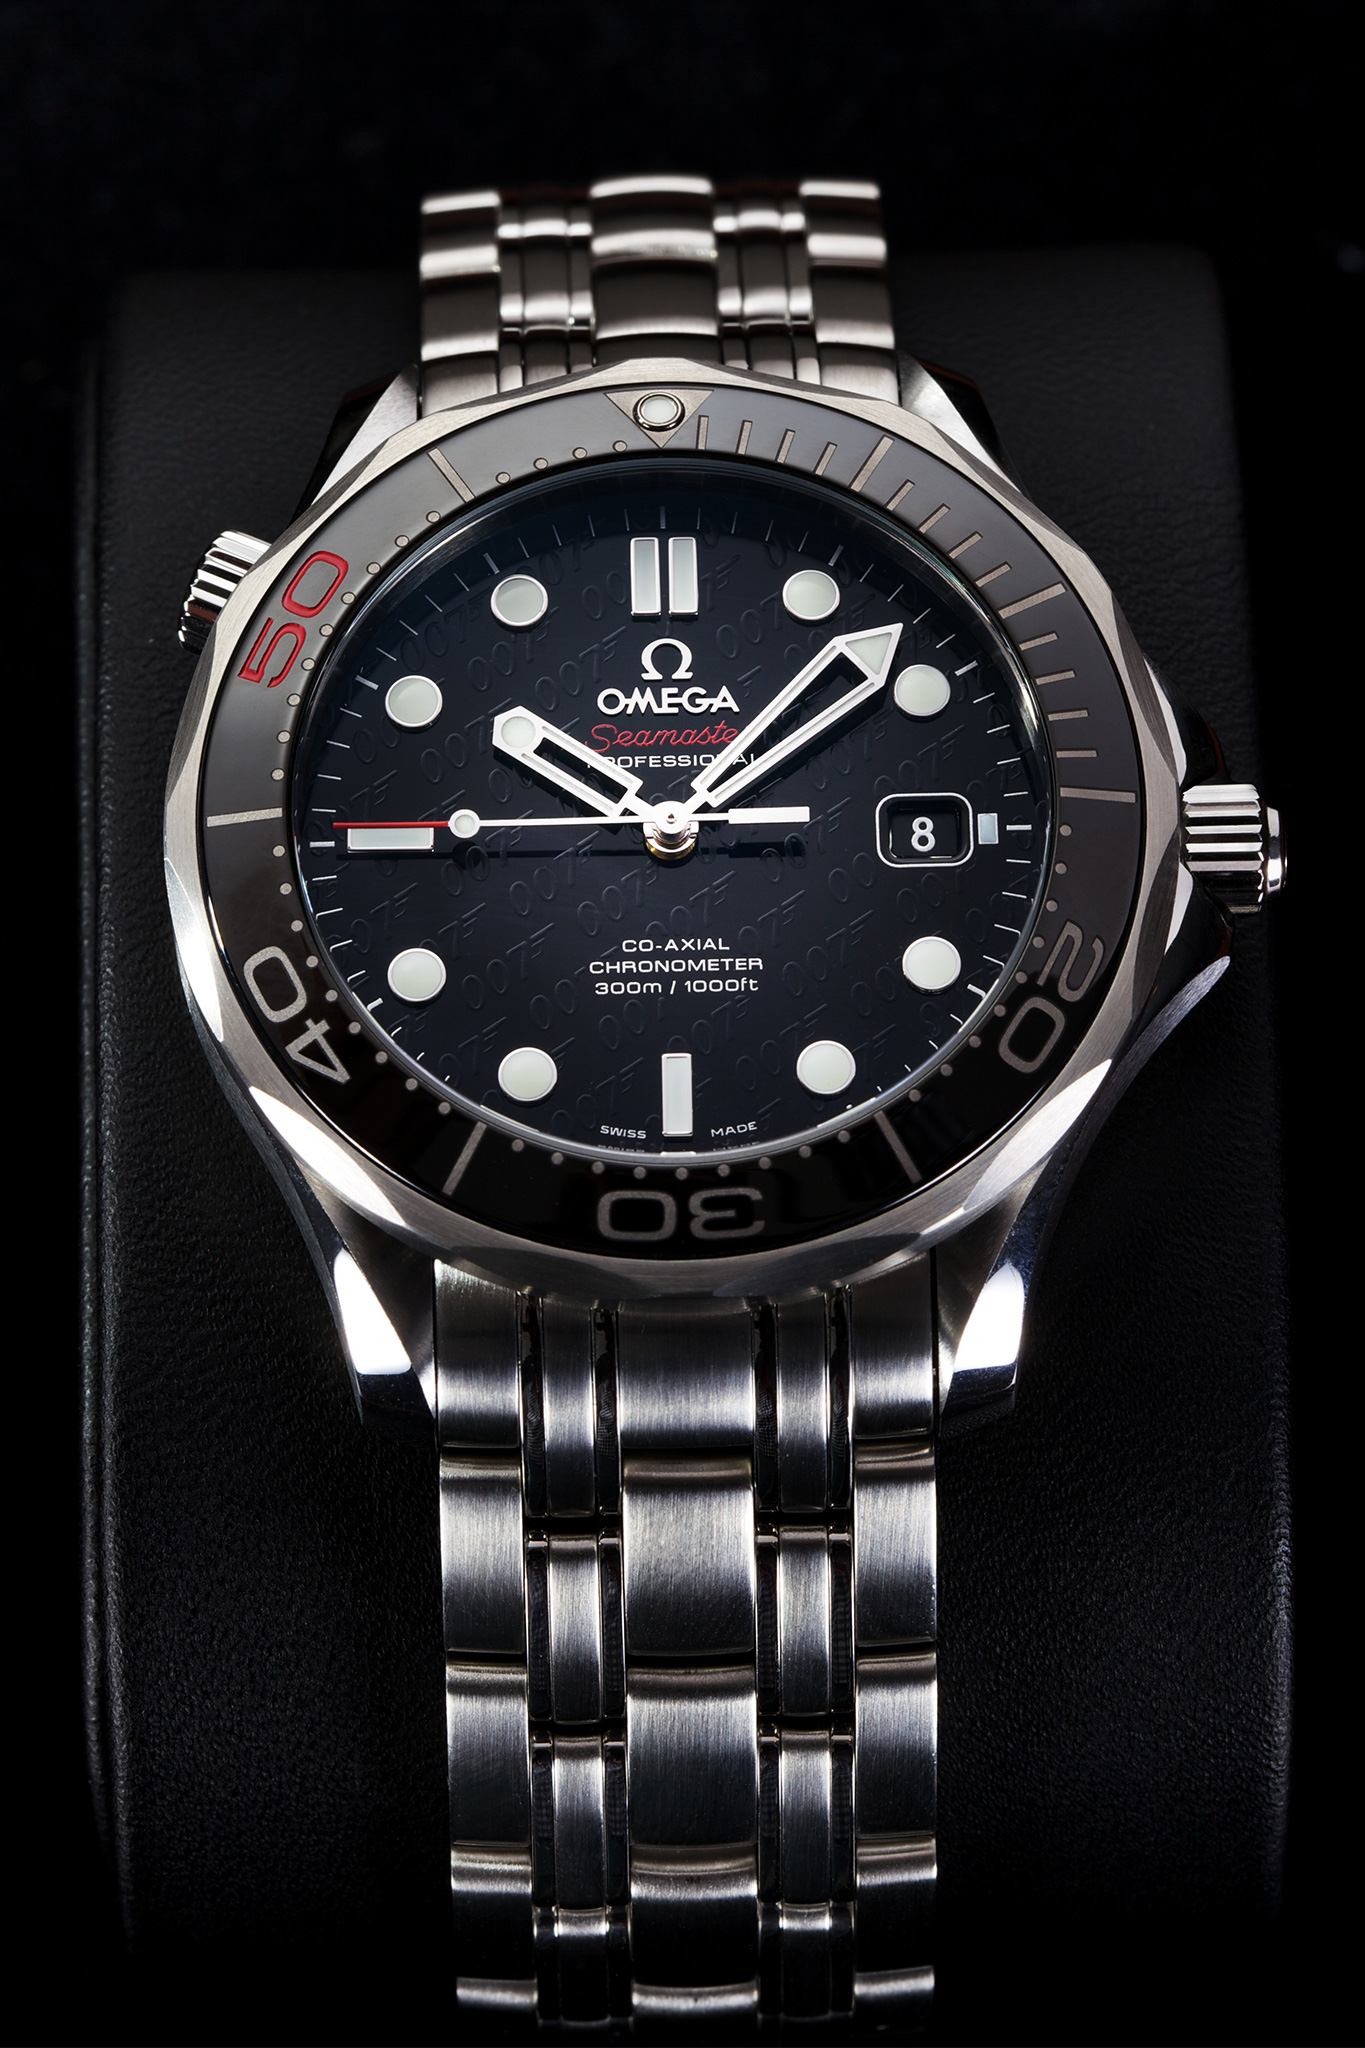 Omega James Bond 007 50th Anniversary Collector's Piece iW Magazine Mike Mellia